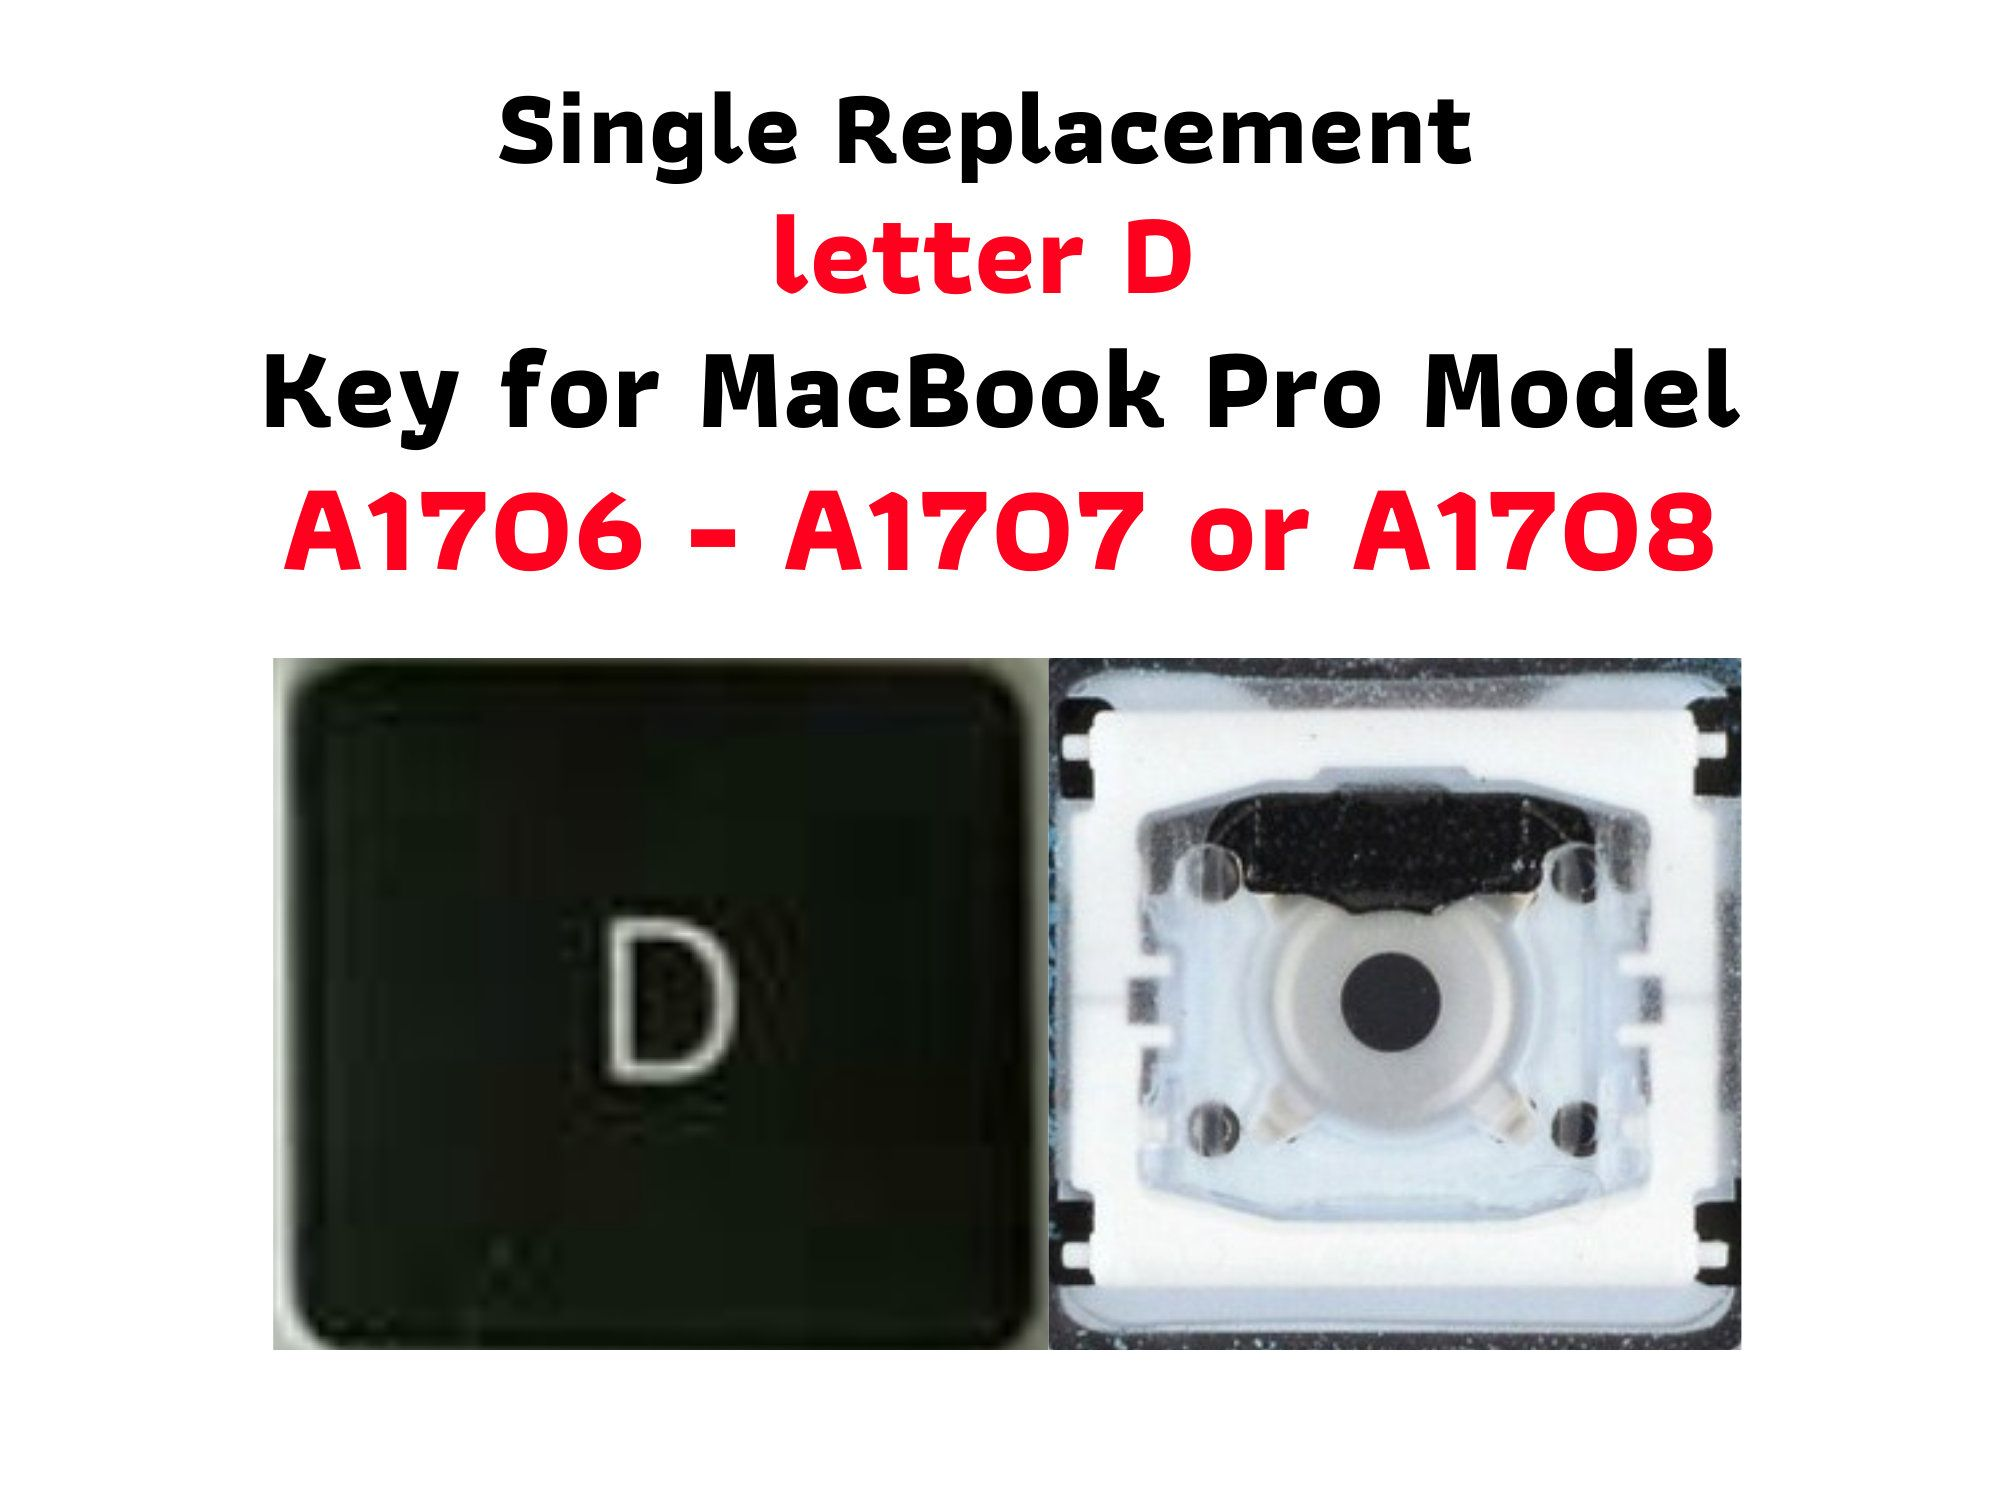 Macbook Pro 2016 17 13 15 A1706 A1707 A1708 Letter D Single Replacement Key W Hinge And Cup Check Hinge By Mackeysplusm Macbook Pro Macbook Macbook Pro 2016